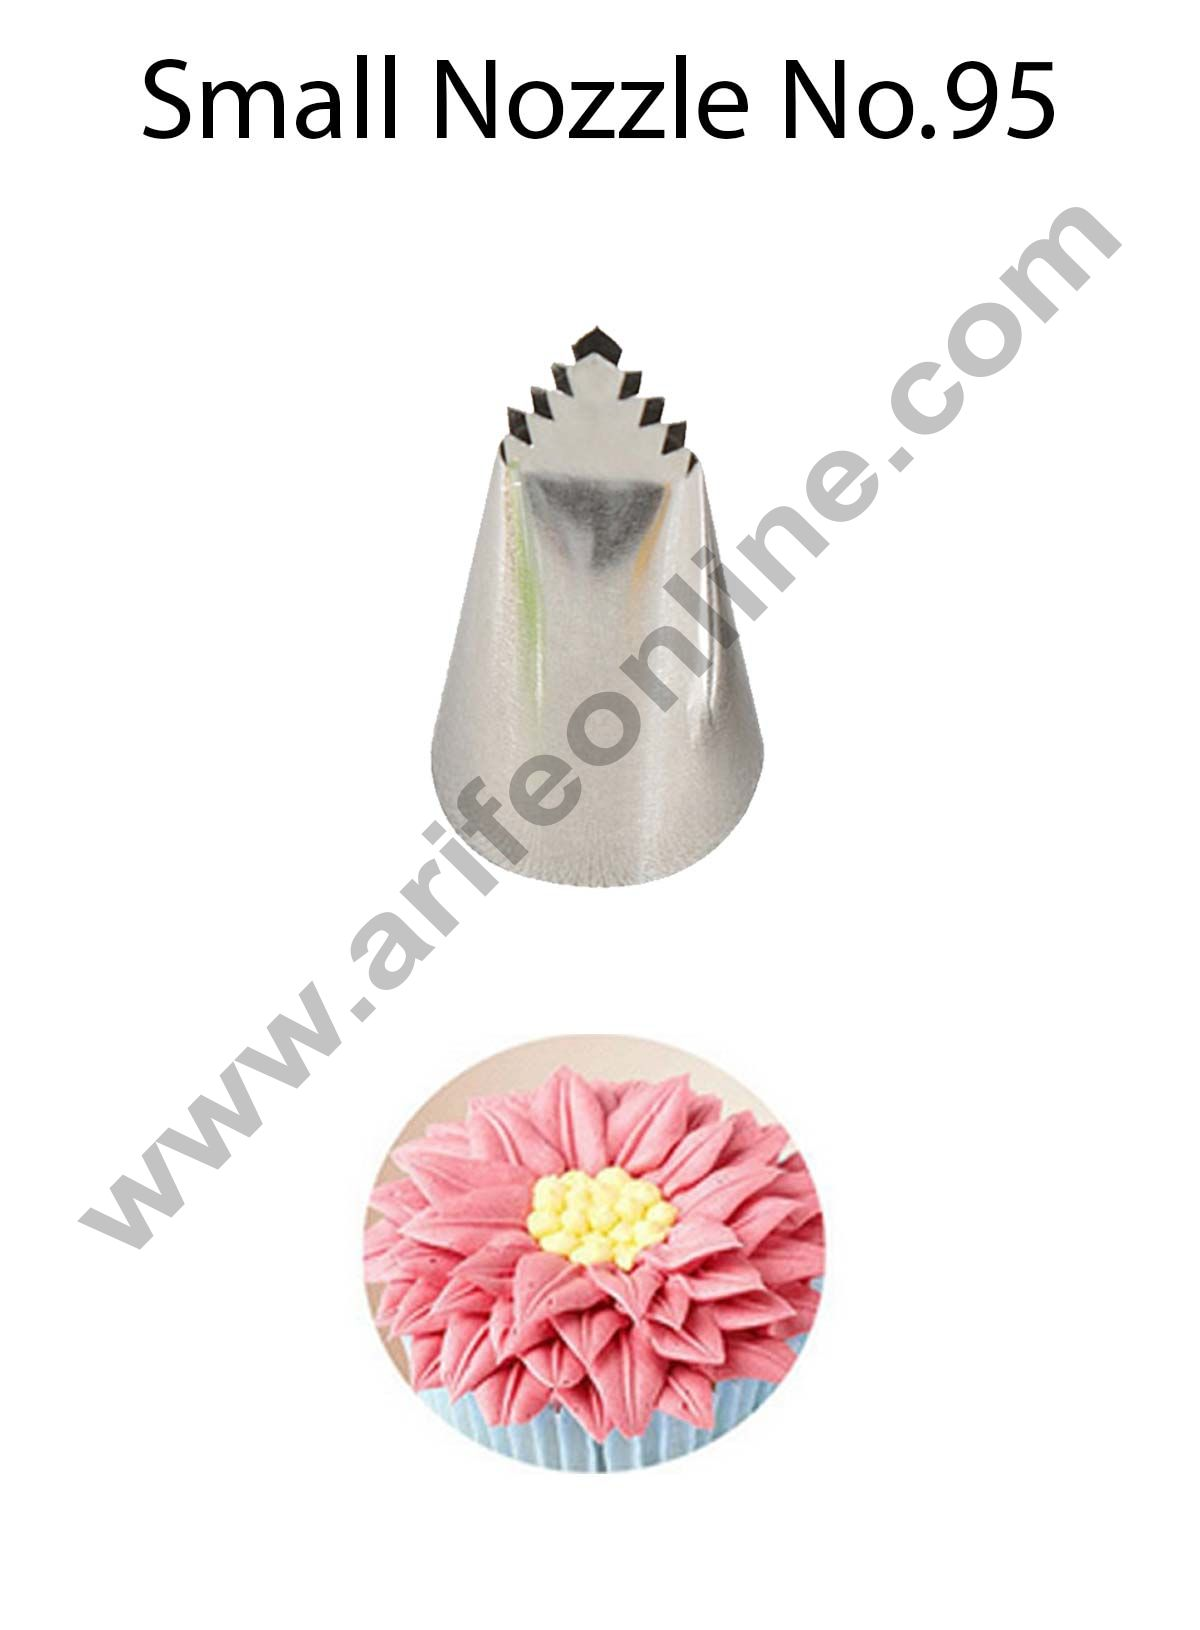 Cake Decor Small Nozzle - No. 95 Specialty Piping Nozzle